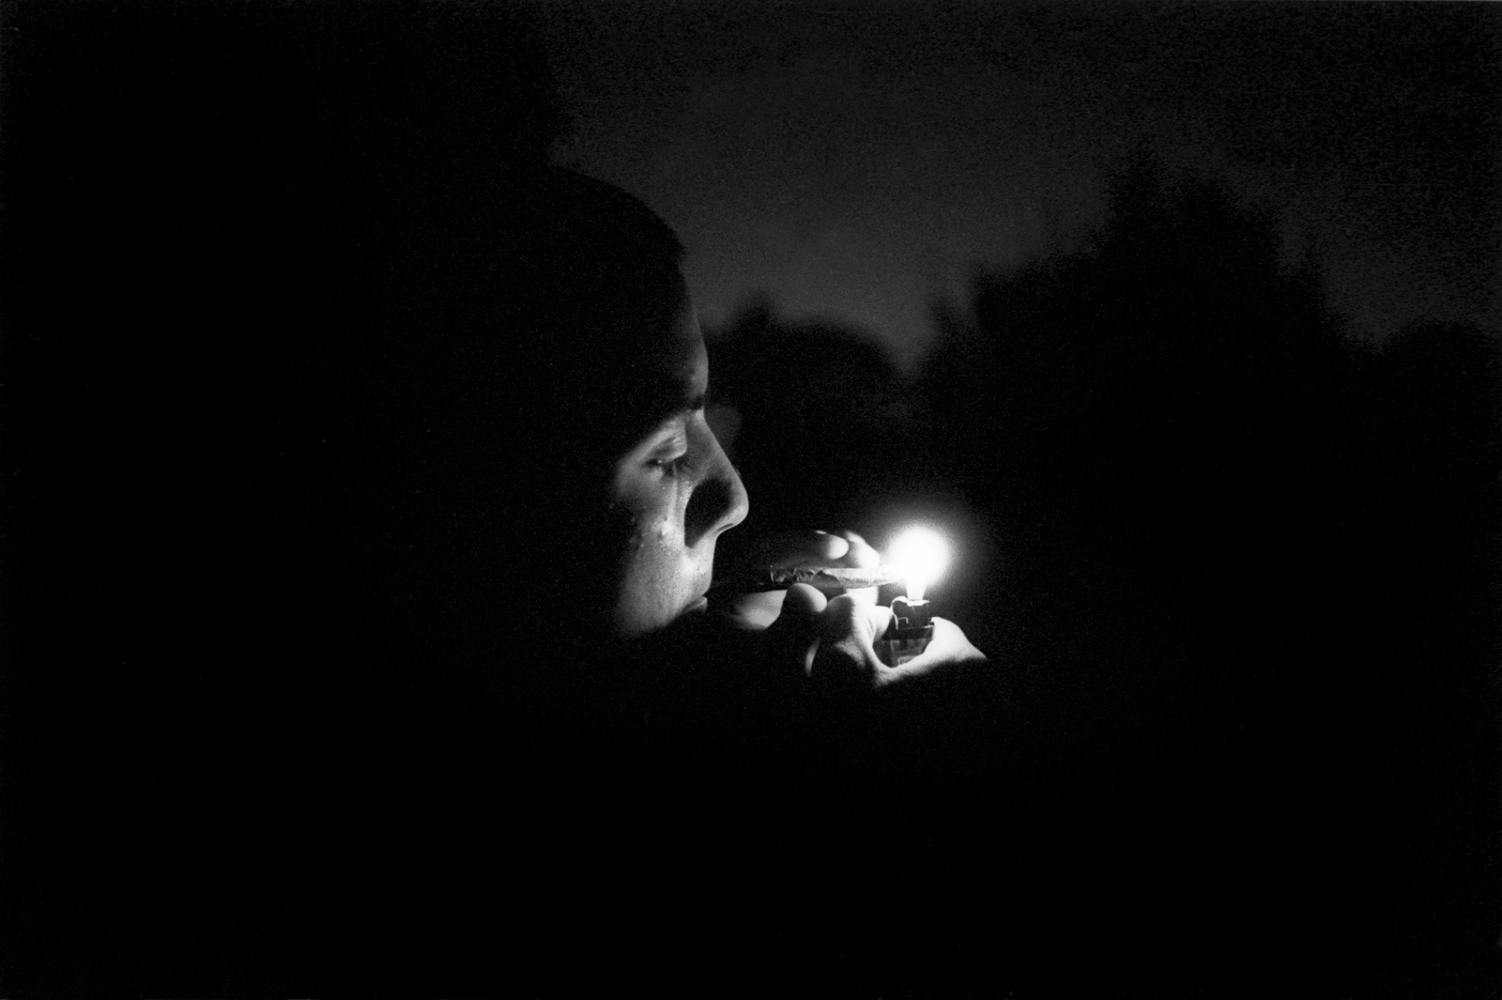 Michael lights up a joint on the roof of his family's home.